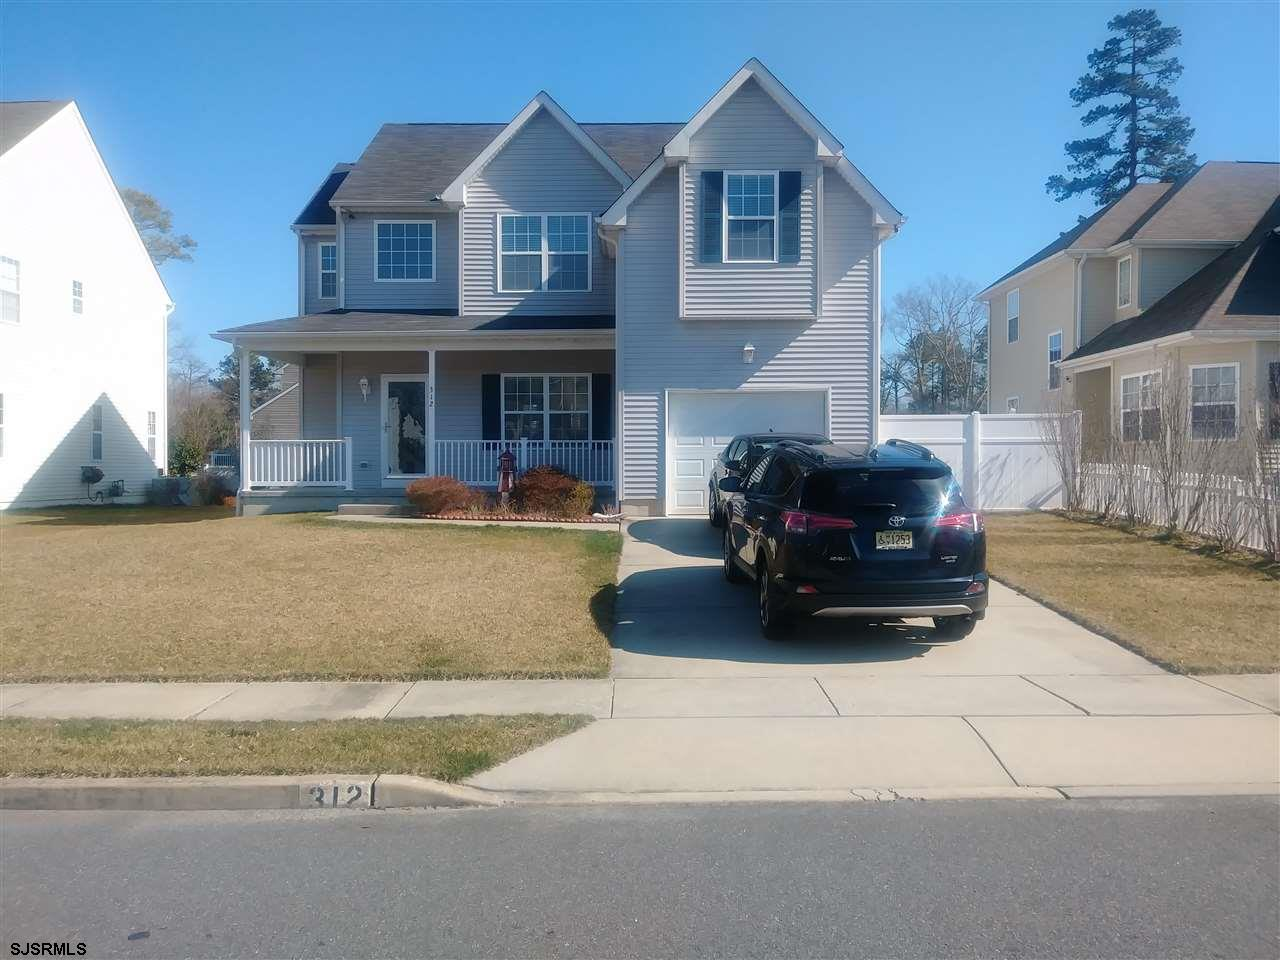 WELCOME HOME TO MEADOWS DRIVE.EZ TO SHOW OWNERS USUALLY HOME.  BRING YOUR FUSSIEST BUYERS! METICULOU